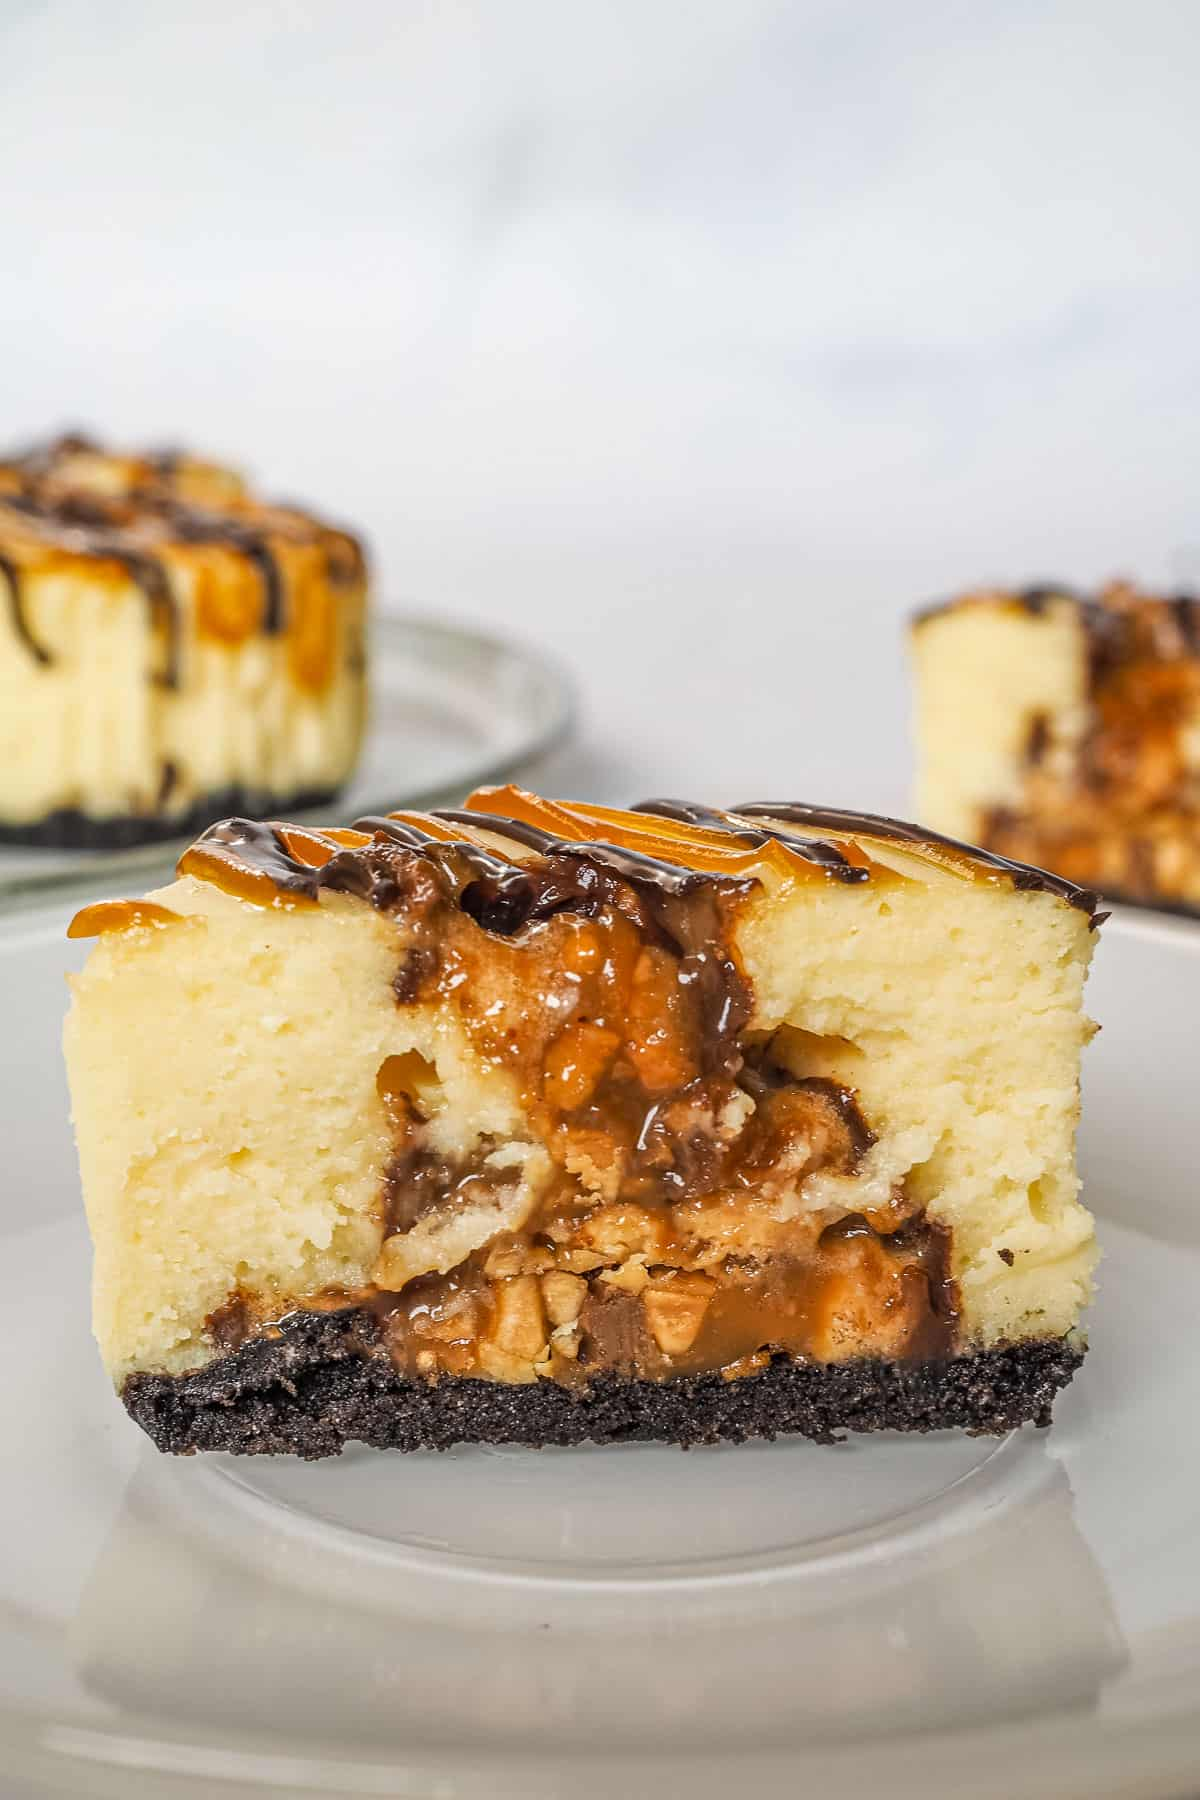 A mini cheesecake cut into half, showing the Snickers candy filling